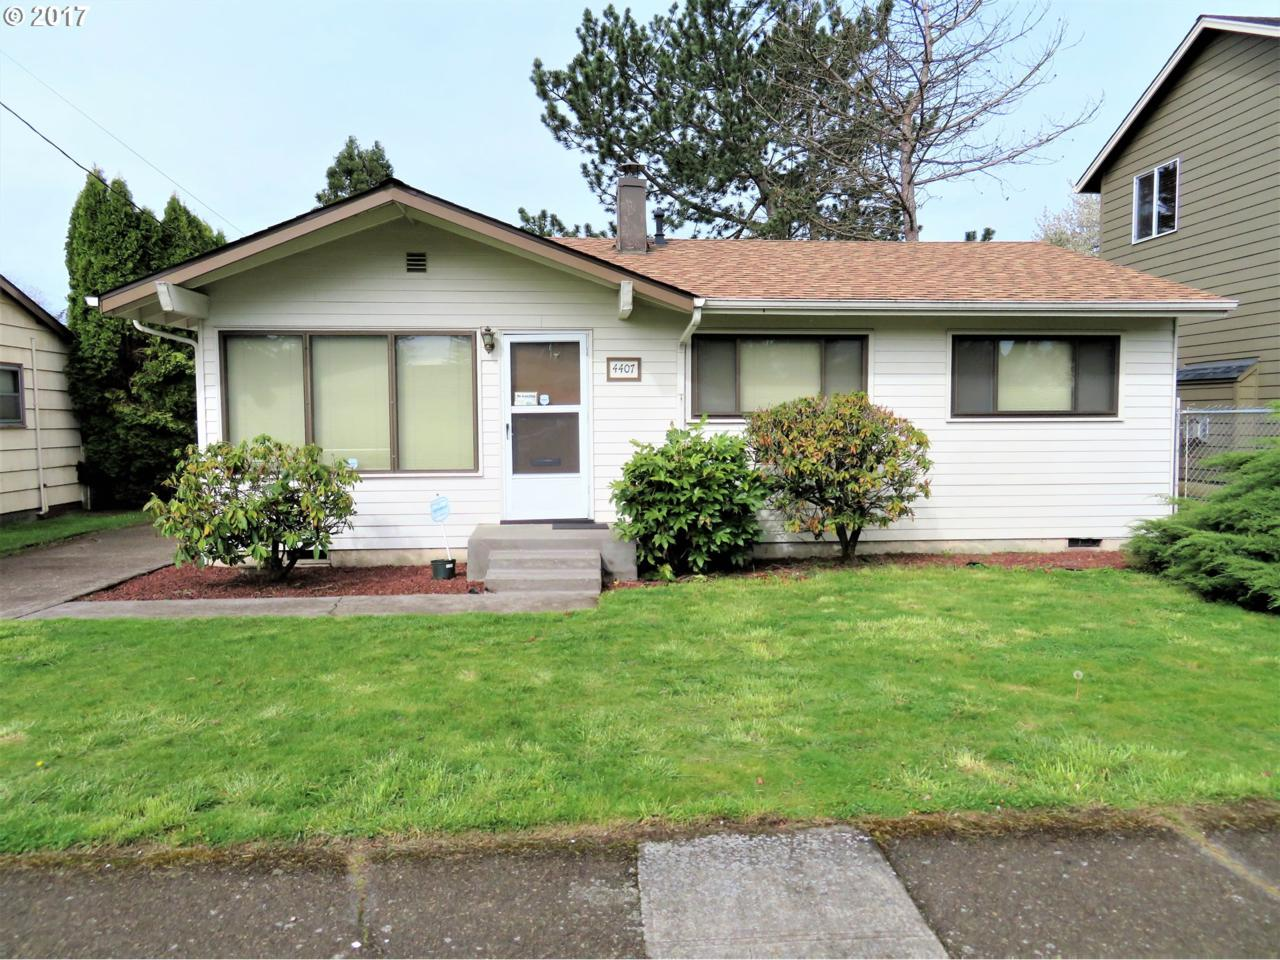 4407 SE 75TH Ave, Portland, OR 97206 (MLS #17270774) :: Change Realty